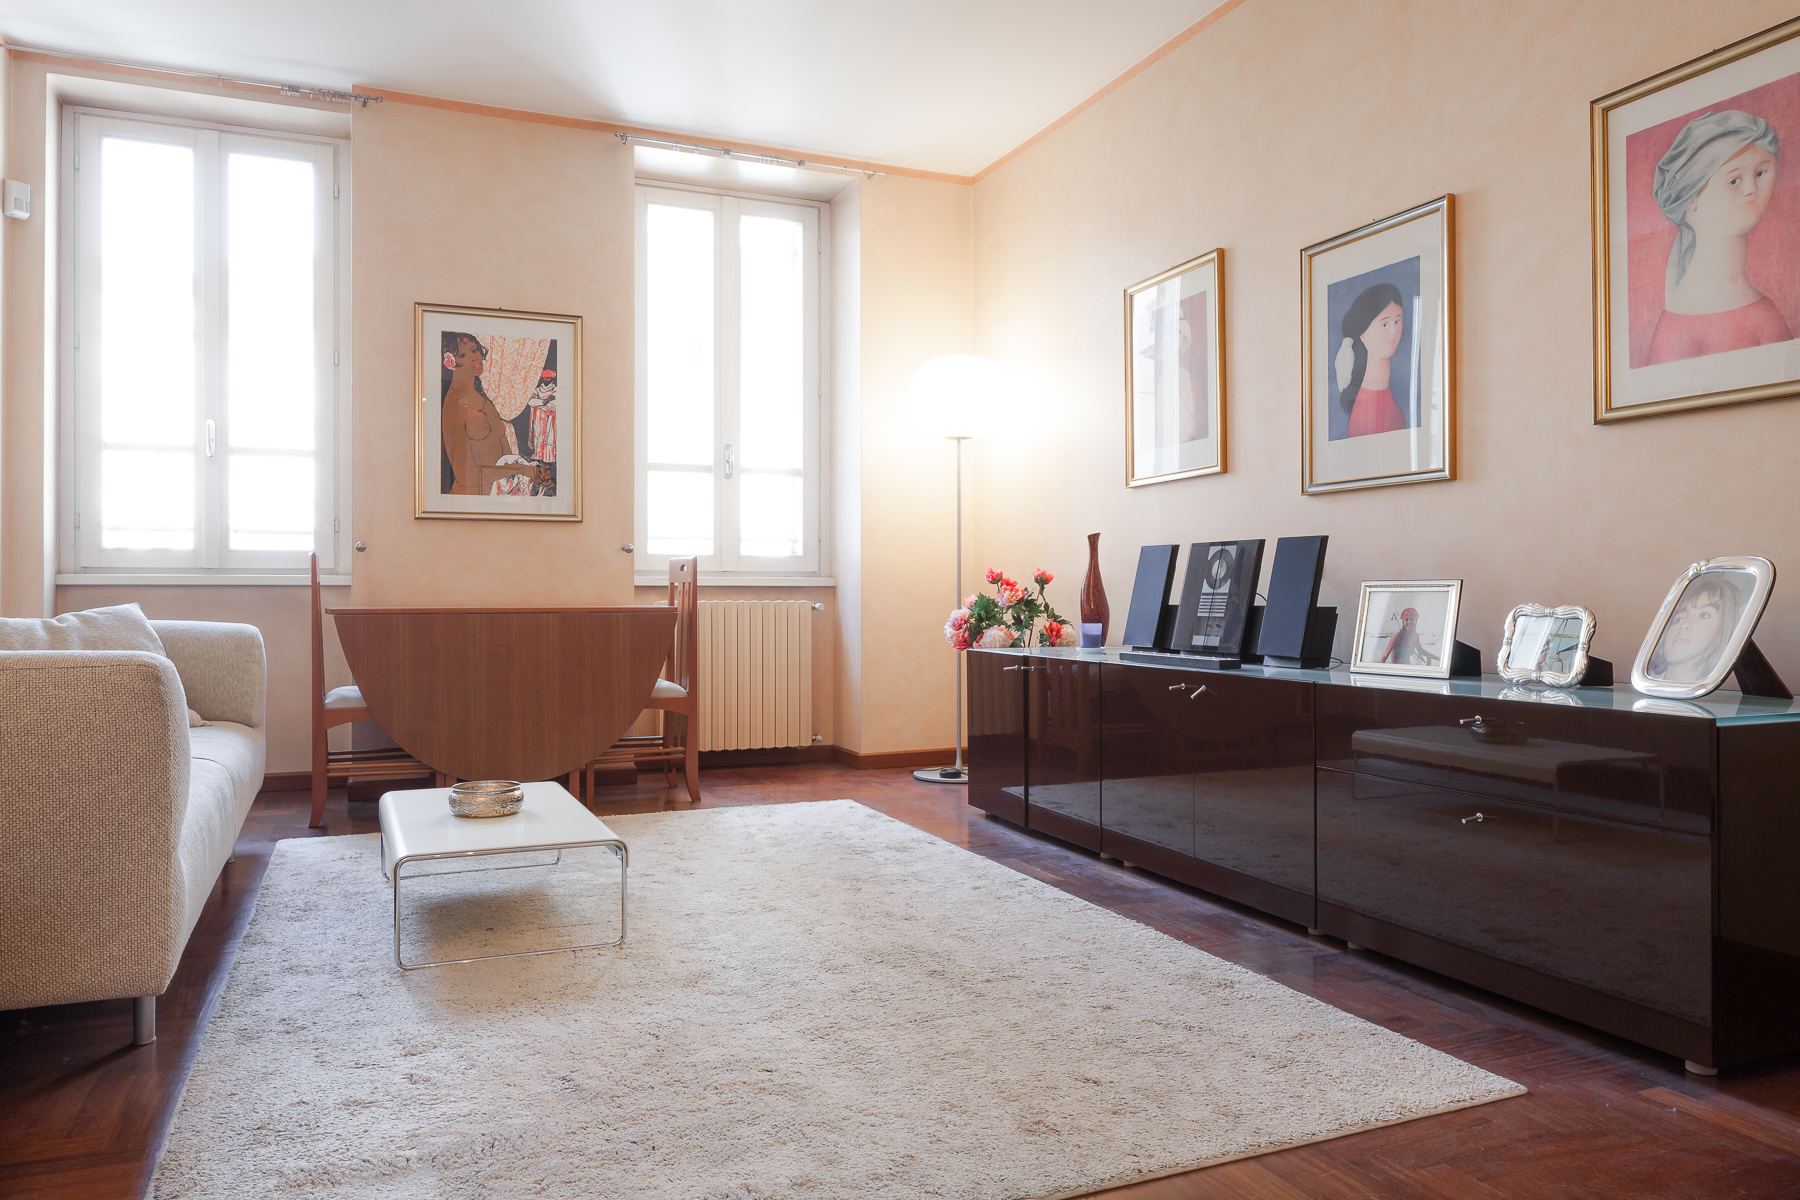 Property For Sale at Renovated 1 bedroom apartment nearby Duomo